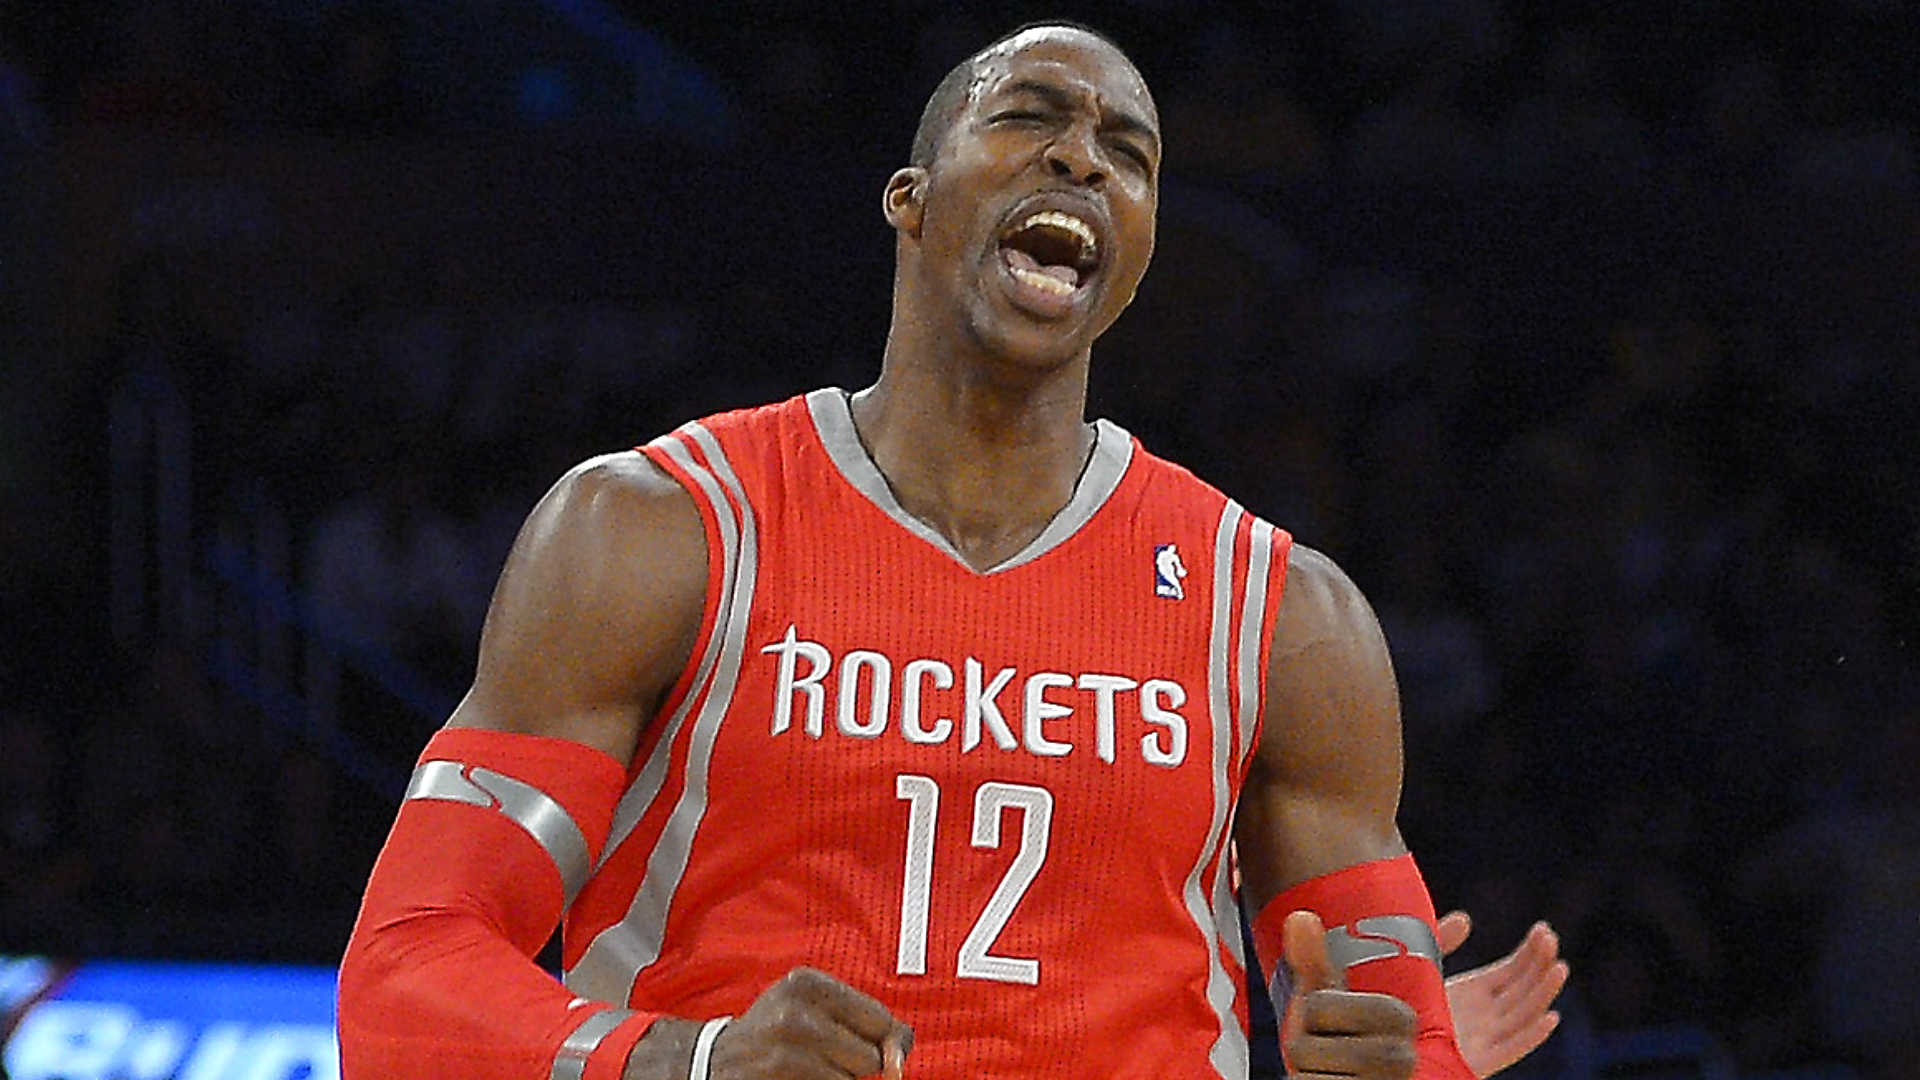 Dwight-Howard-021914-AP-FTR.jpg